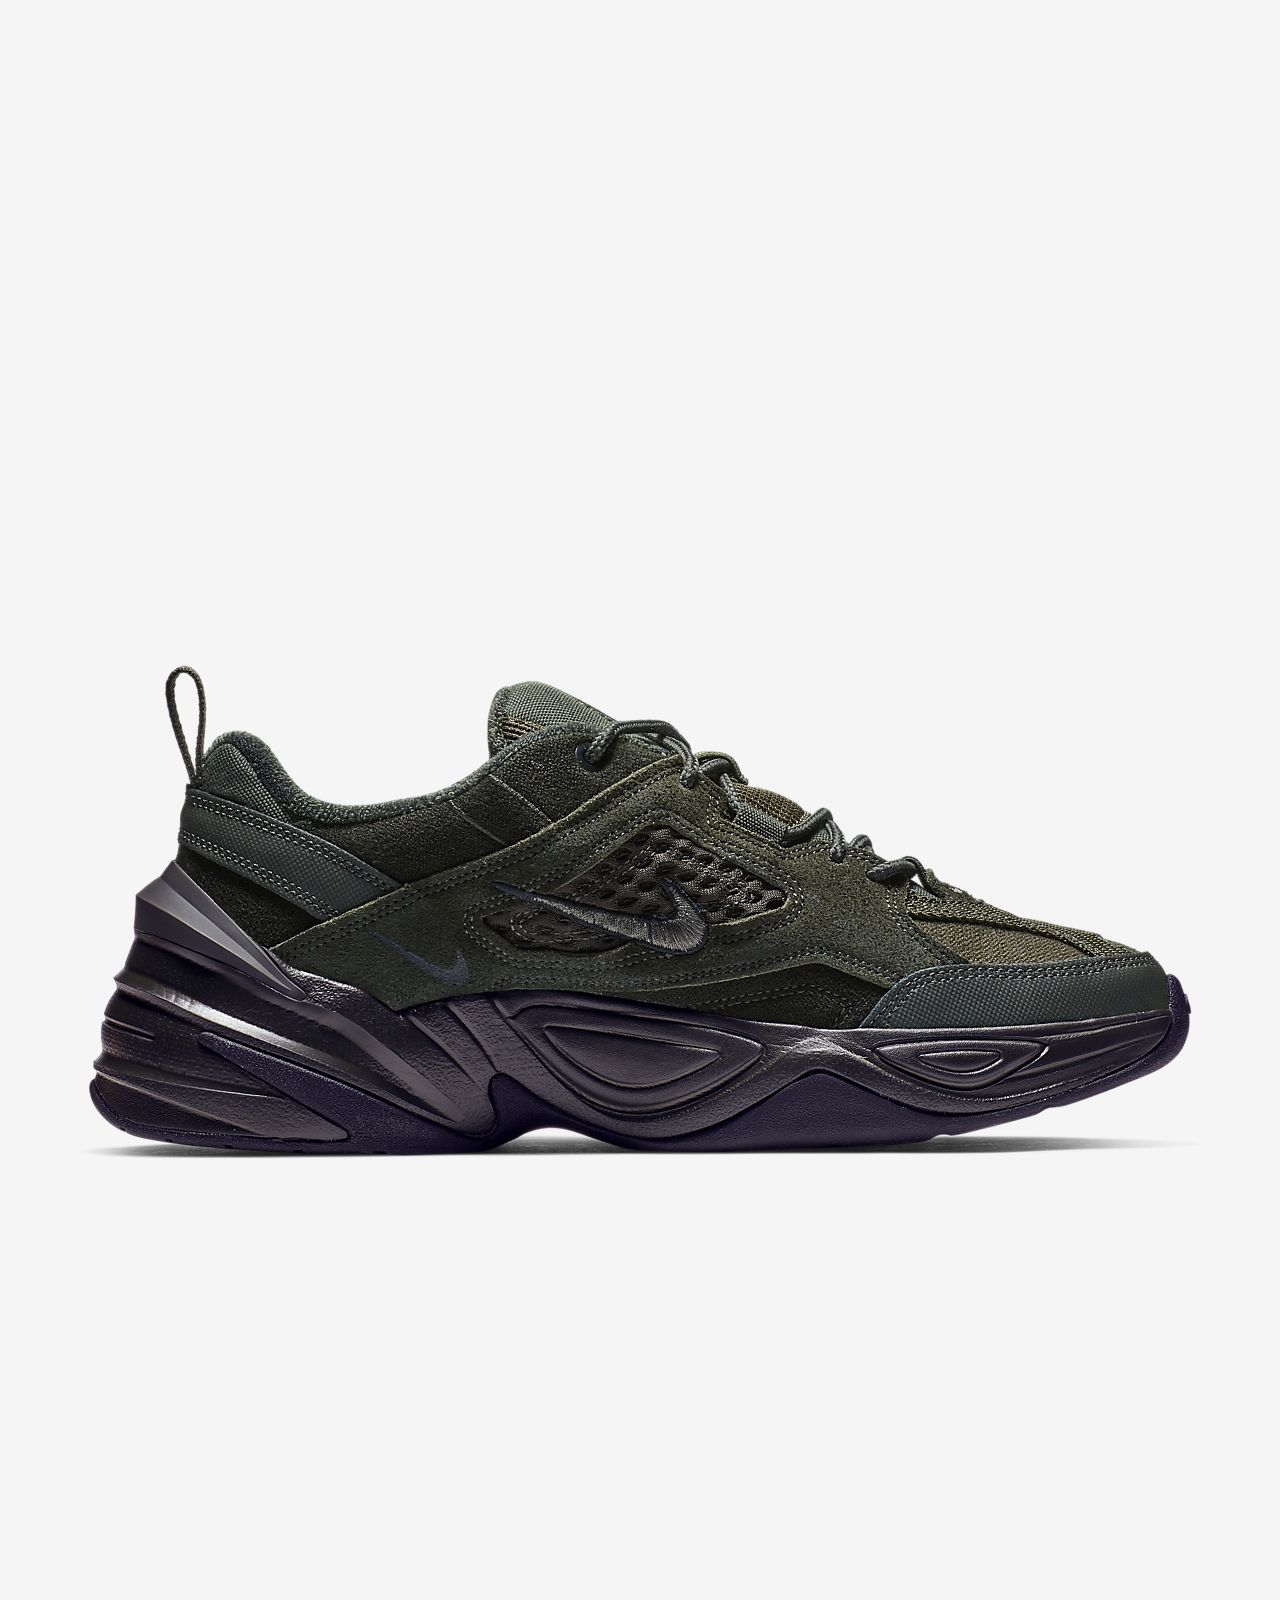 new product c1dbf a5a5a ... Nike M2K Tekno SP Men s Shoe